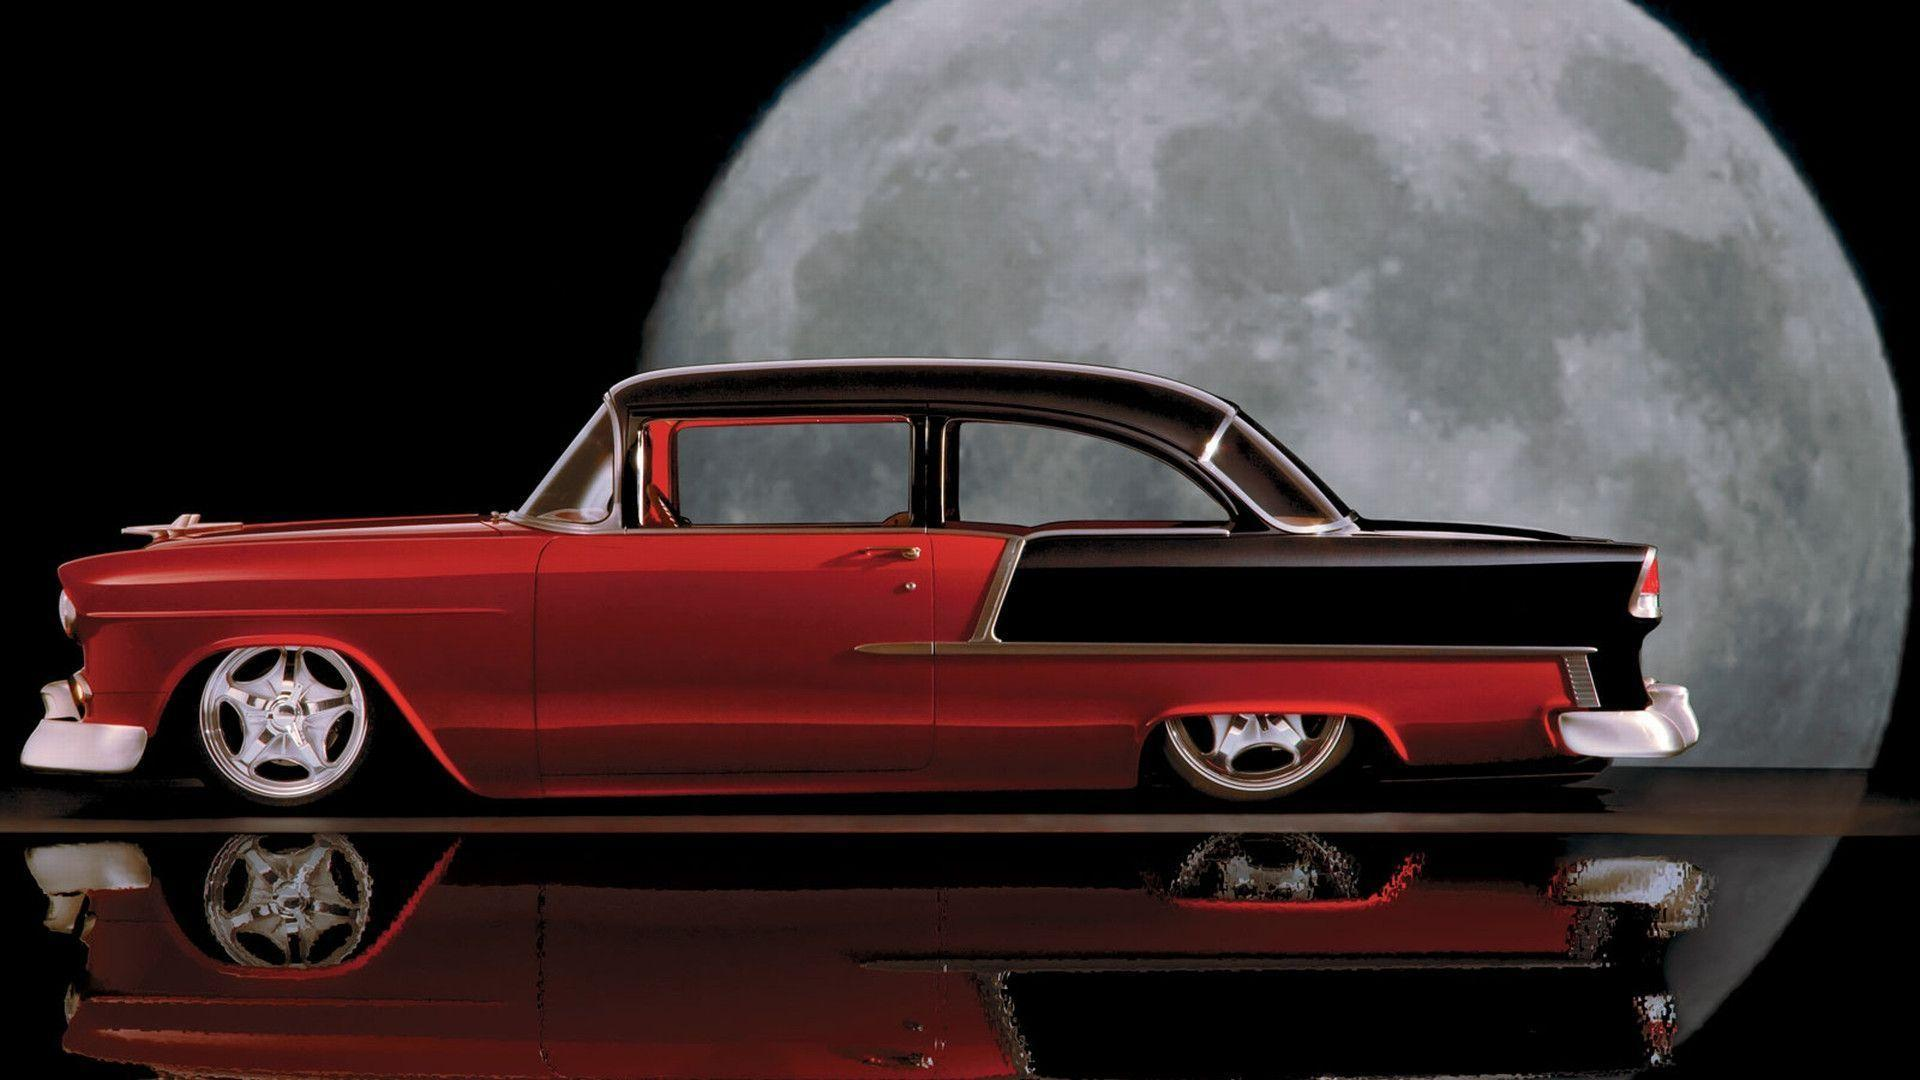 57 chevy wallpapers wallpaper cave